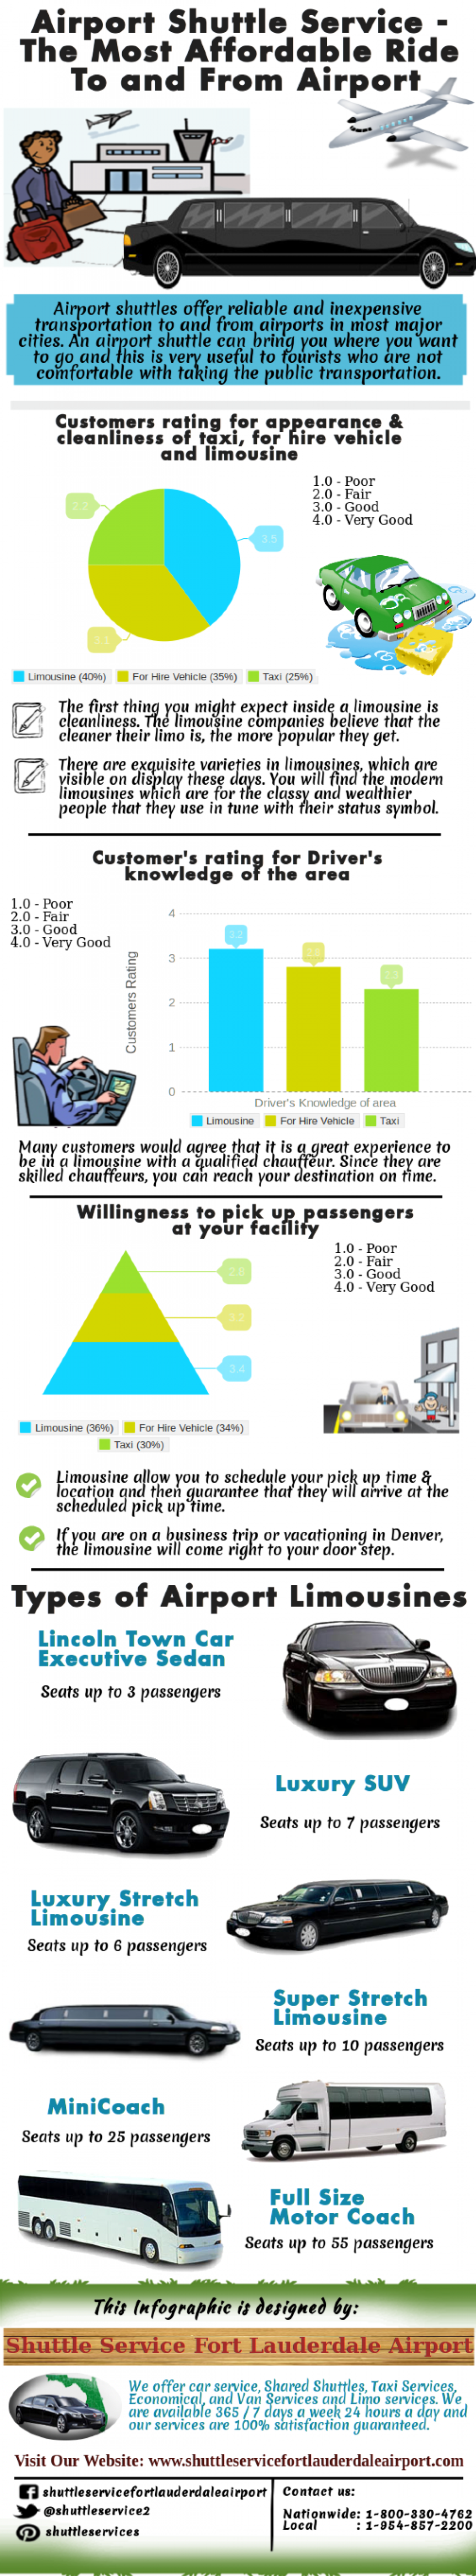 Airport Shuttle Service - The Most Affordable Ride To and From Airport Infographic